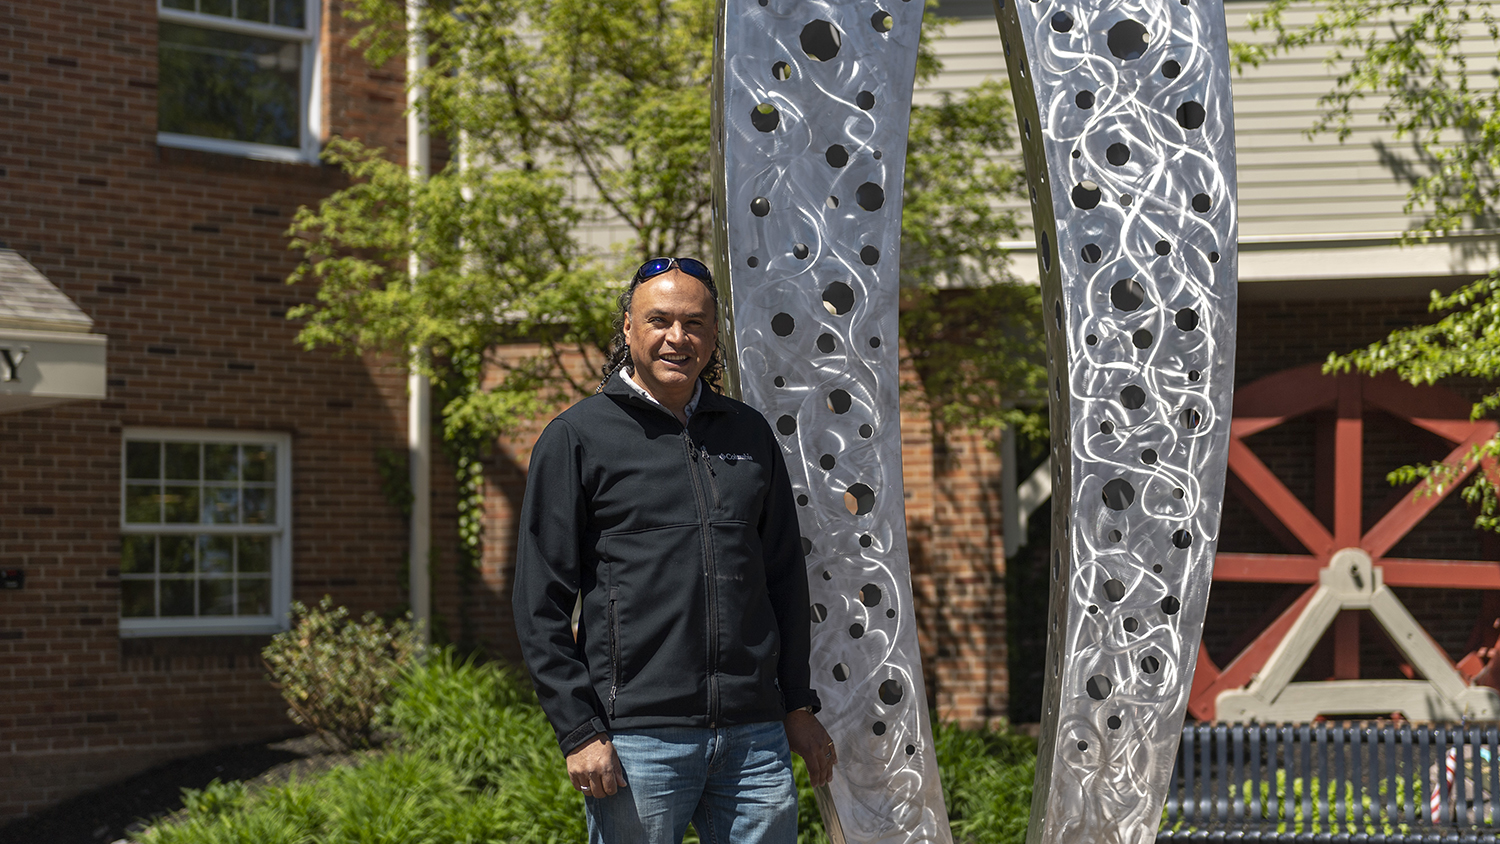 Carlos Caballero-Perez stands next to the public sculpture he created in Fairport.